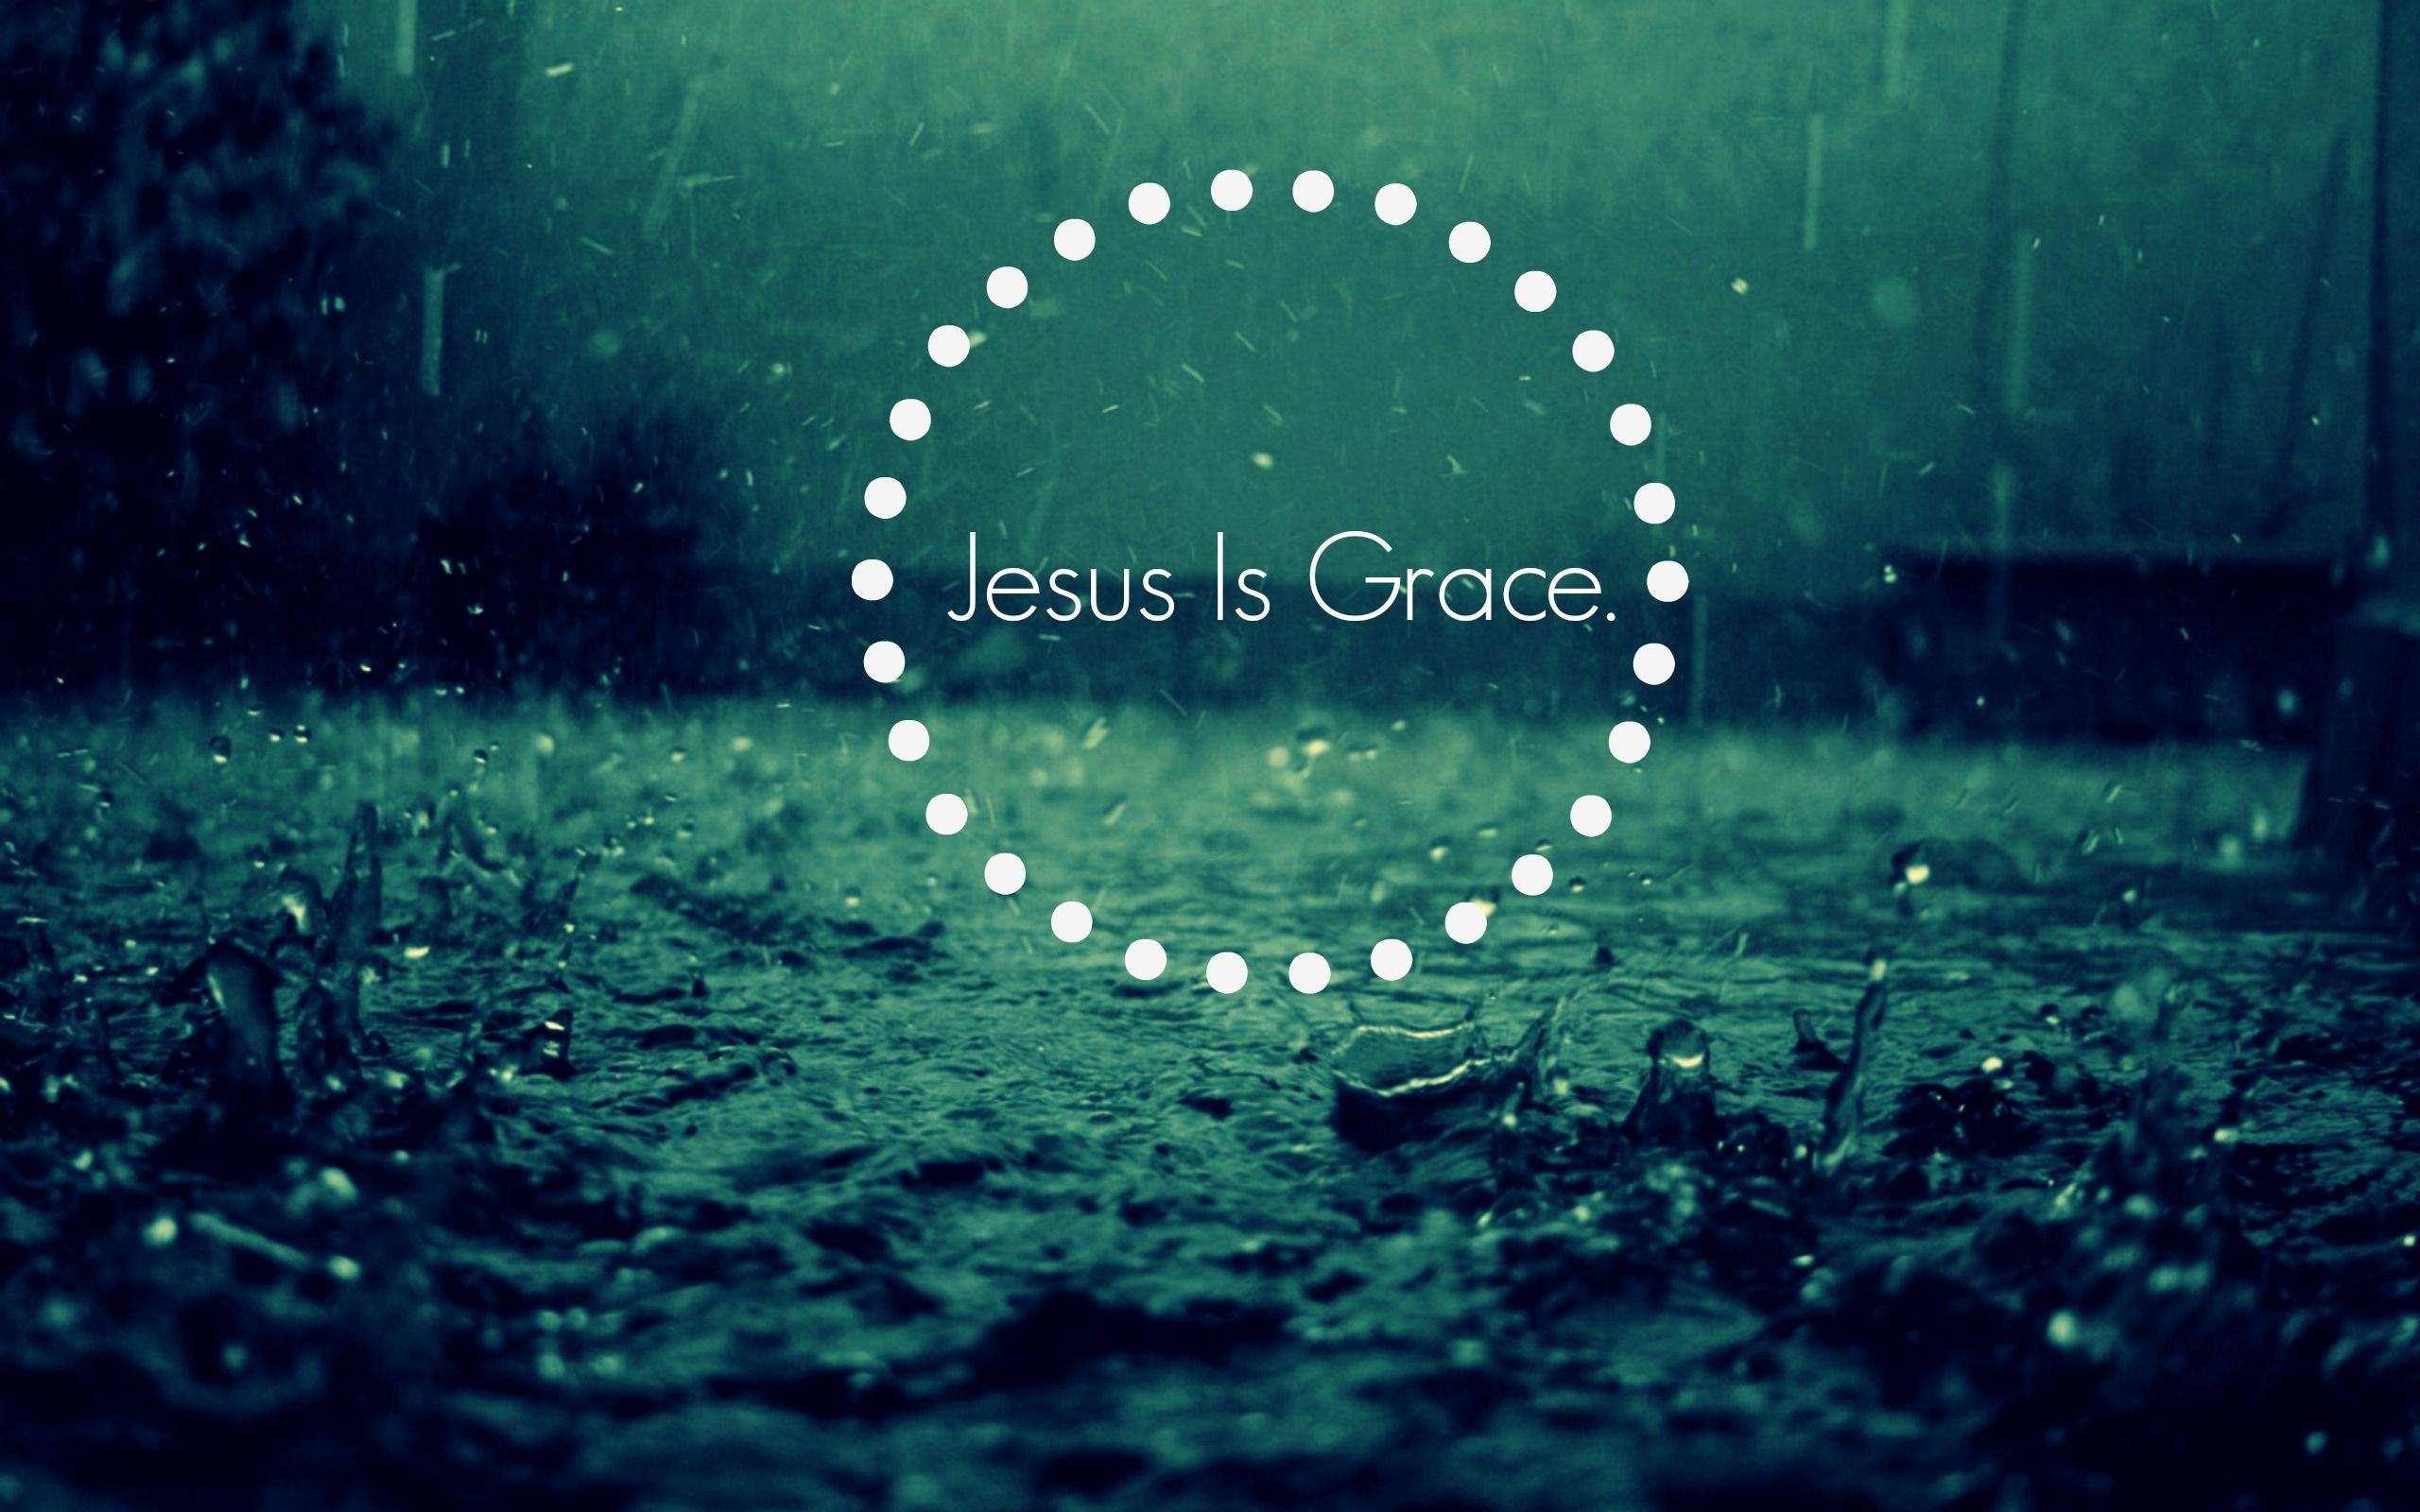 jesus is grace falling rain background with sound rain drops keep